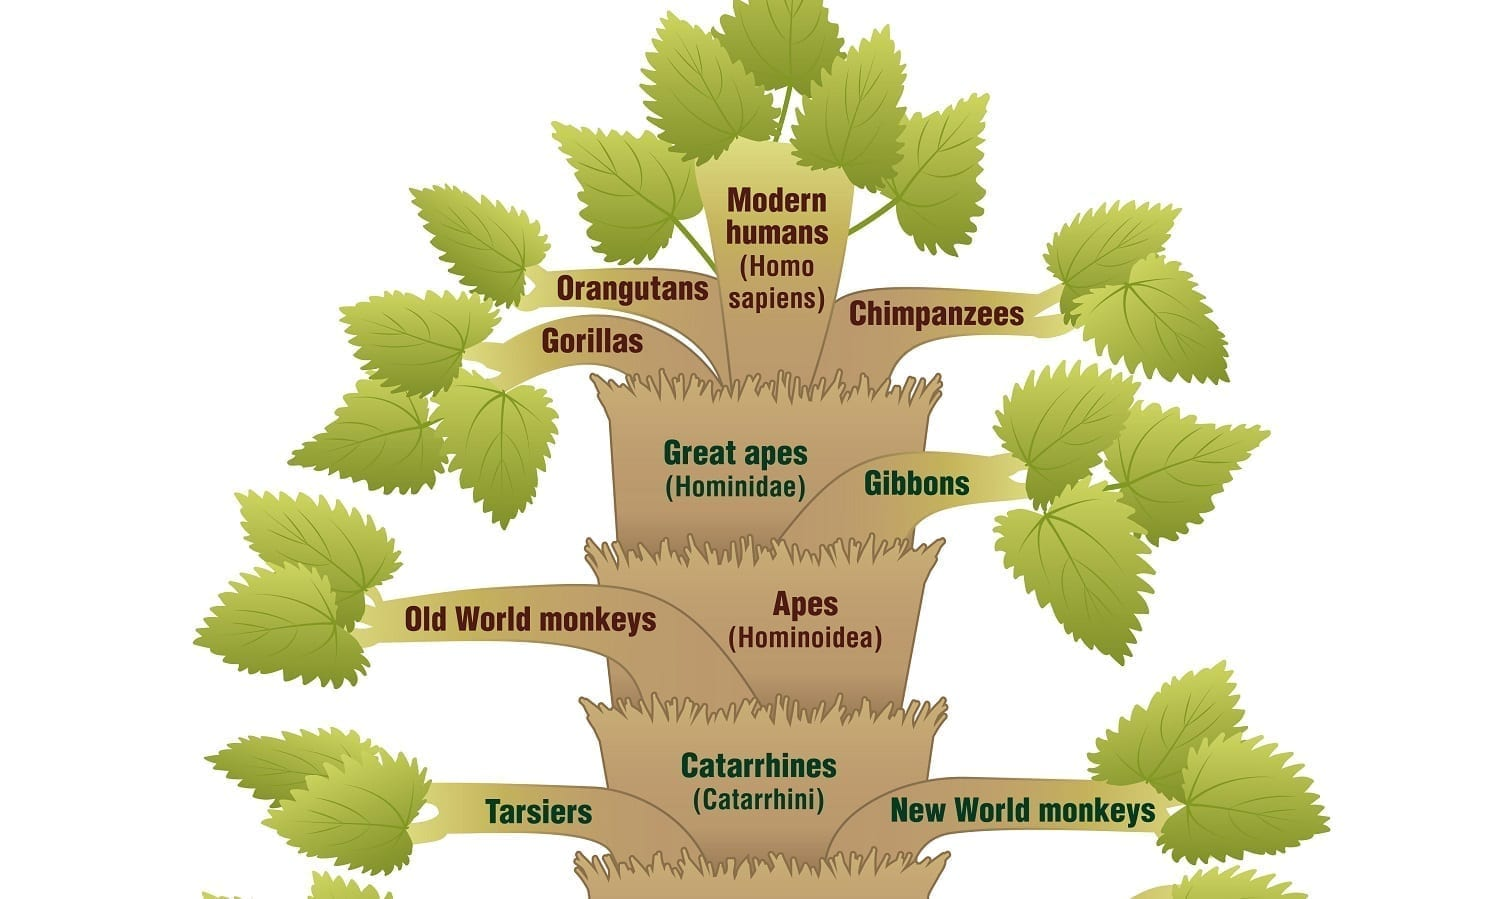 Evolutionary Tree of Life showing Gorillas farther from Humans than Chimps are: Illustration 51982494 © Peter Hermes Furian - Dreamstime.com